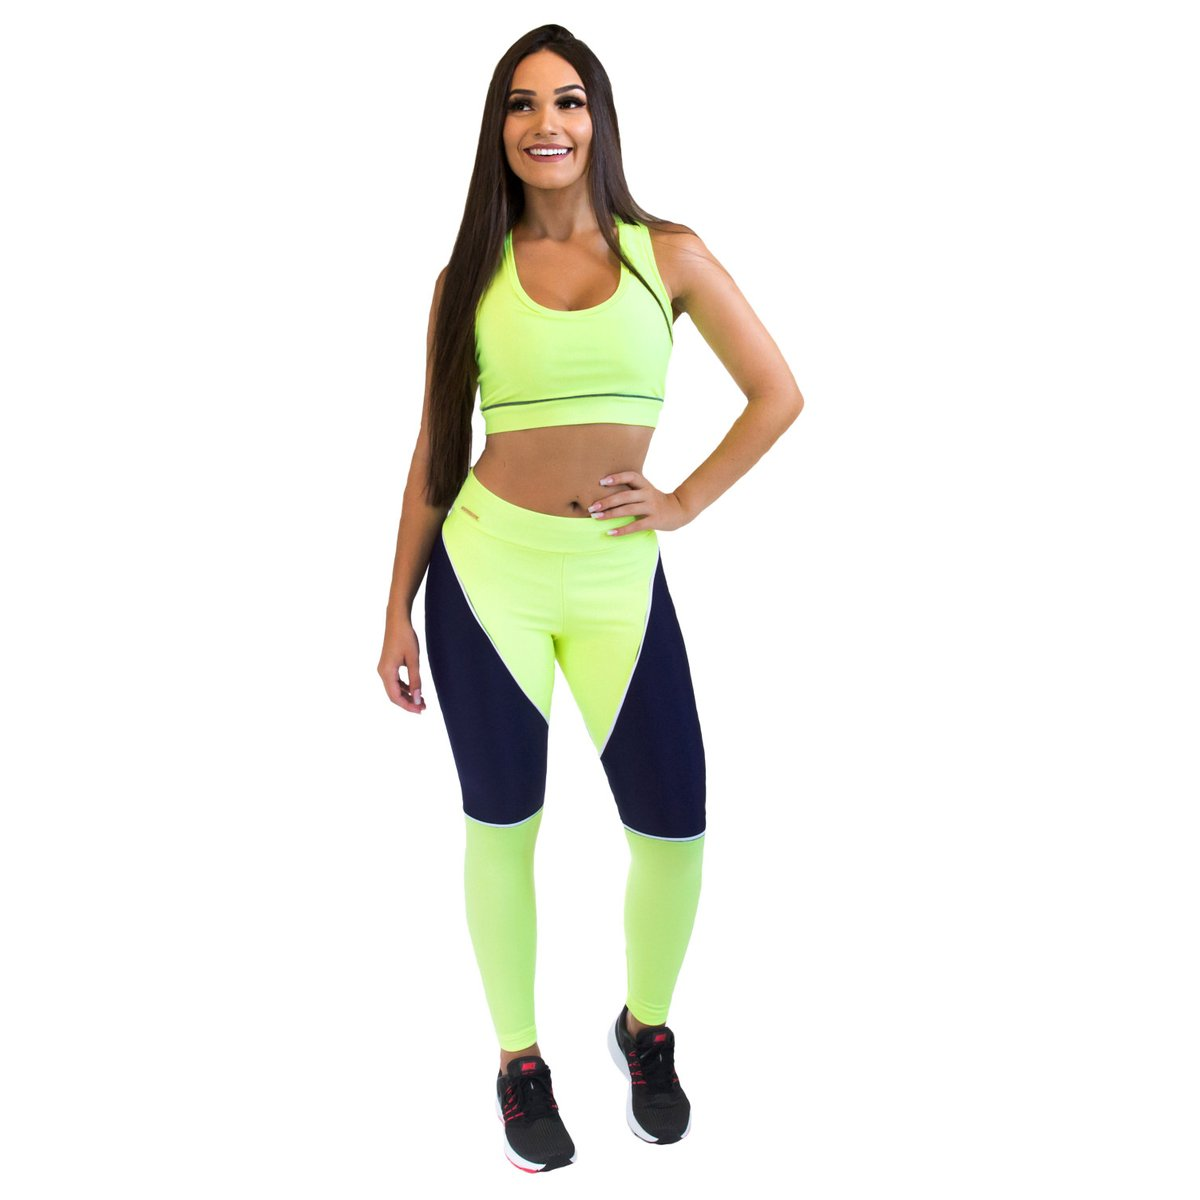 Verde Legging Fit Girl Power Brasil e Feminina Azul Calça Training H1qwBdWxH0